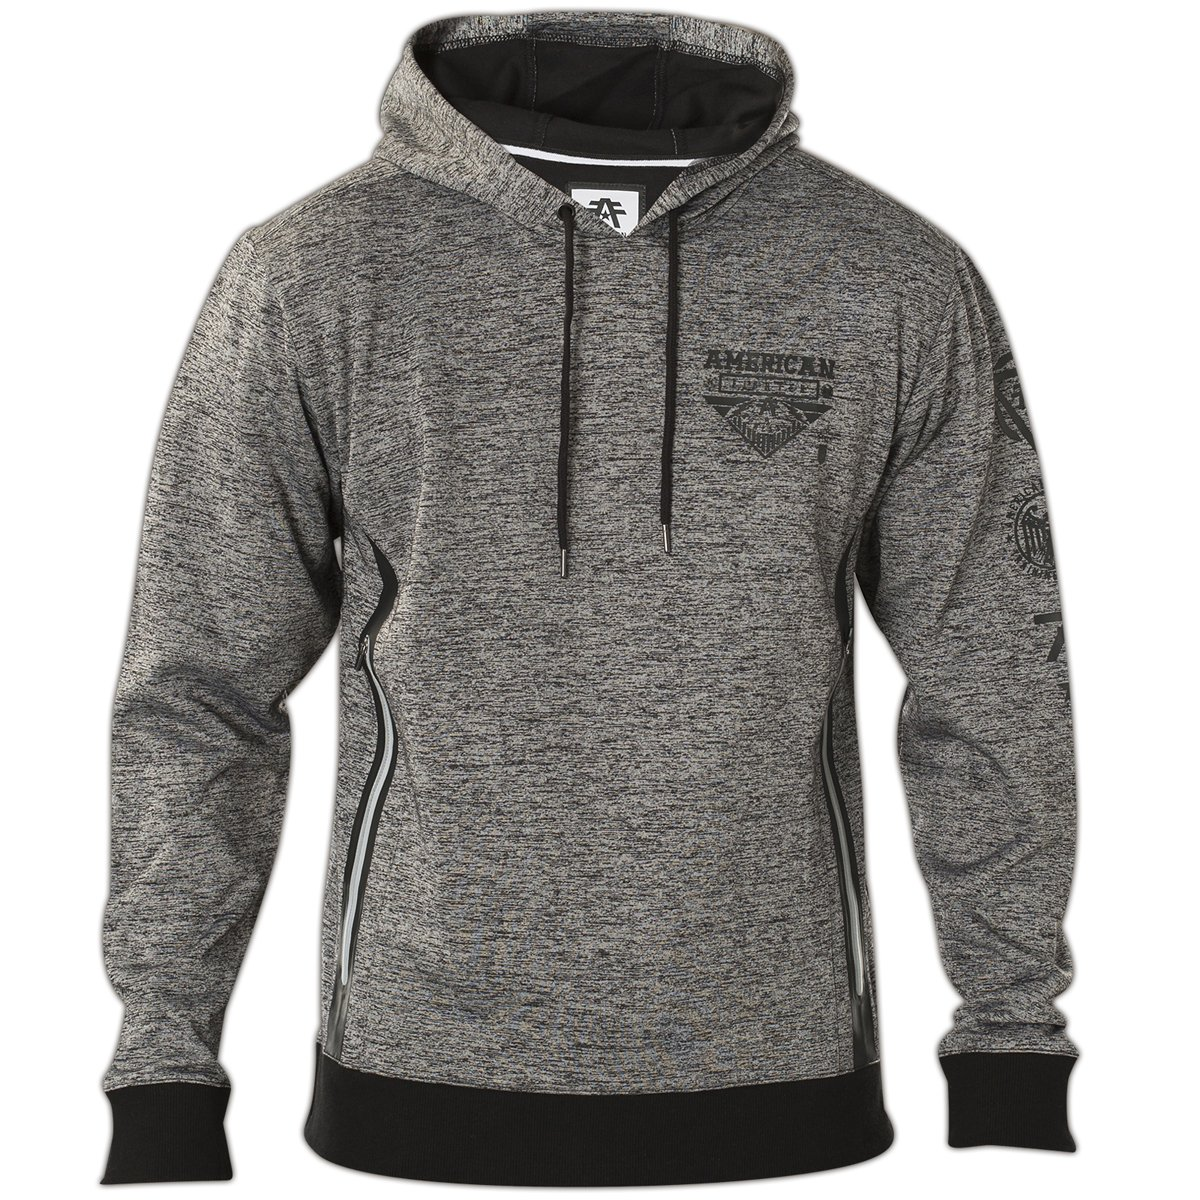 American Fighter by Affliction Hoody Light Out Grau